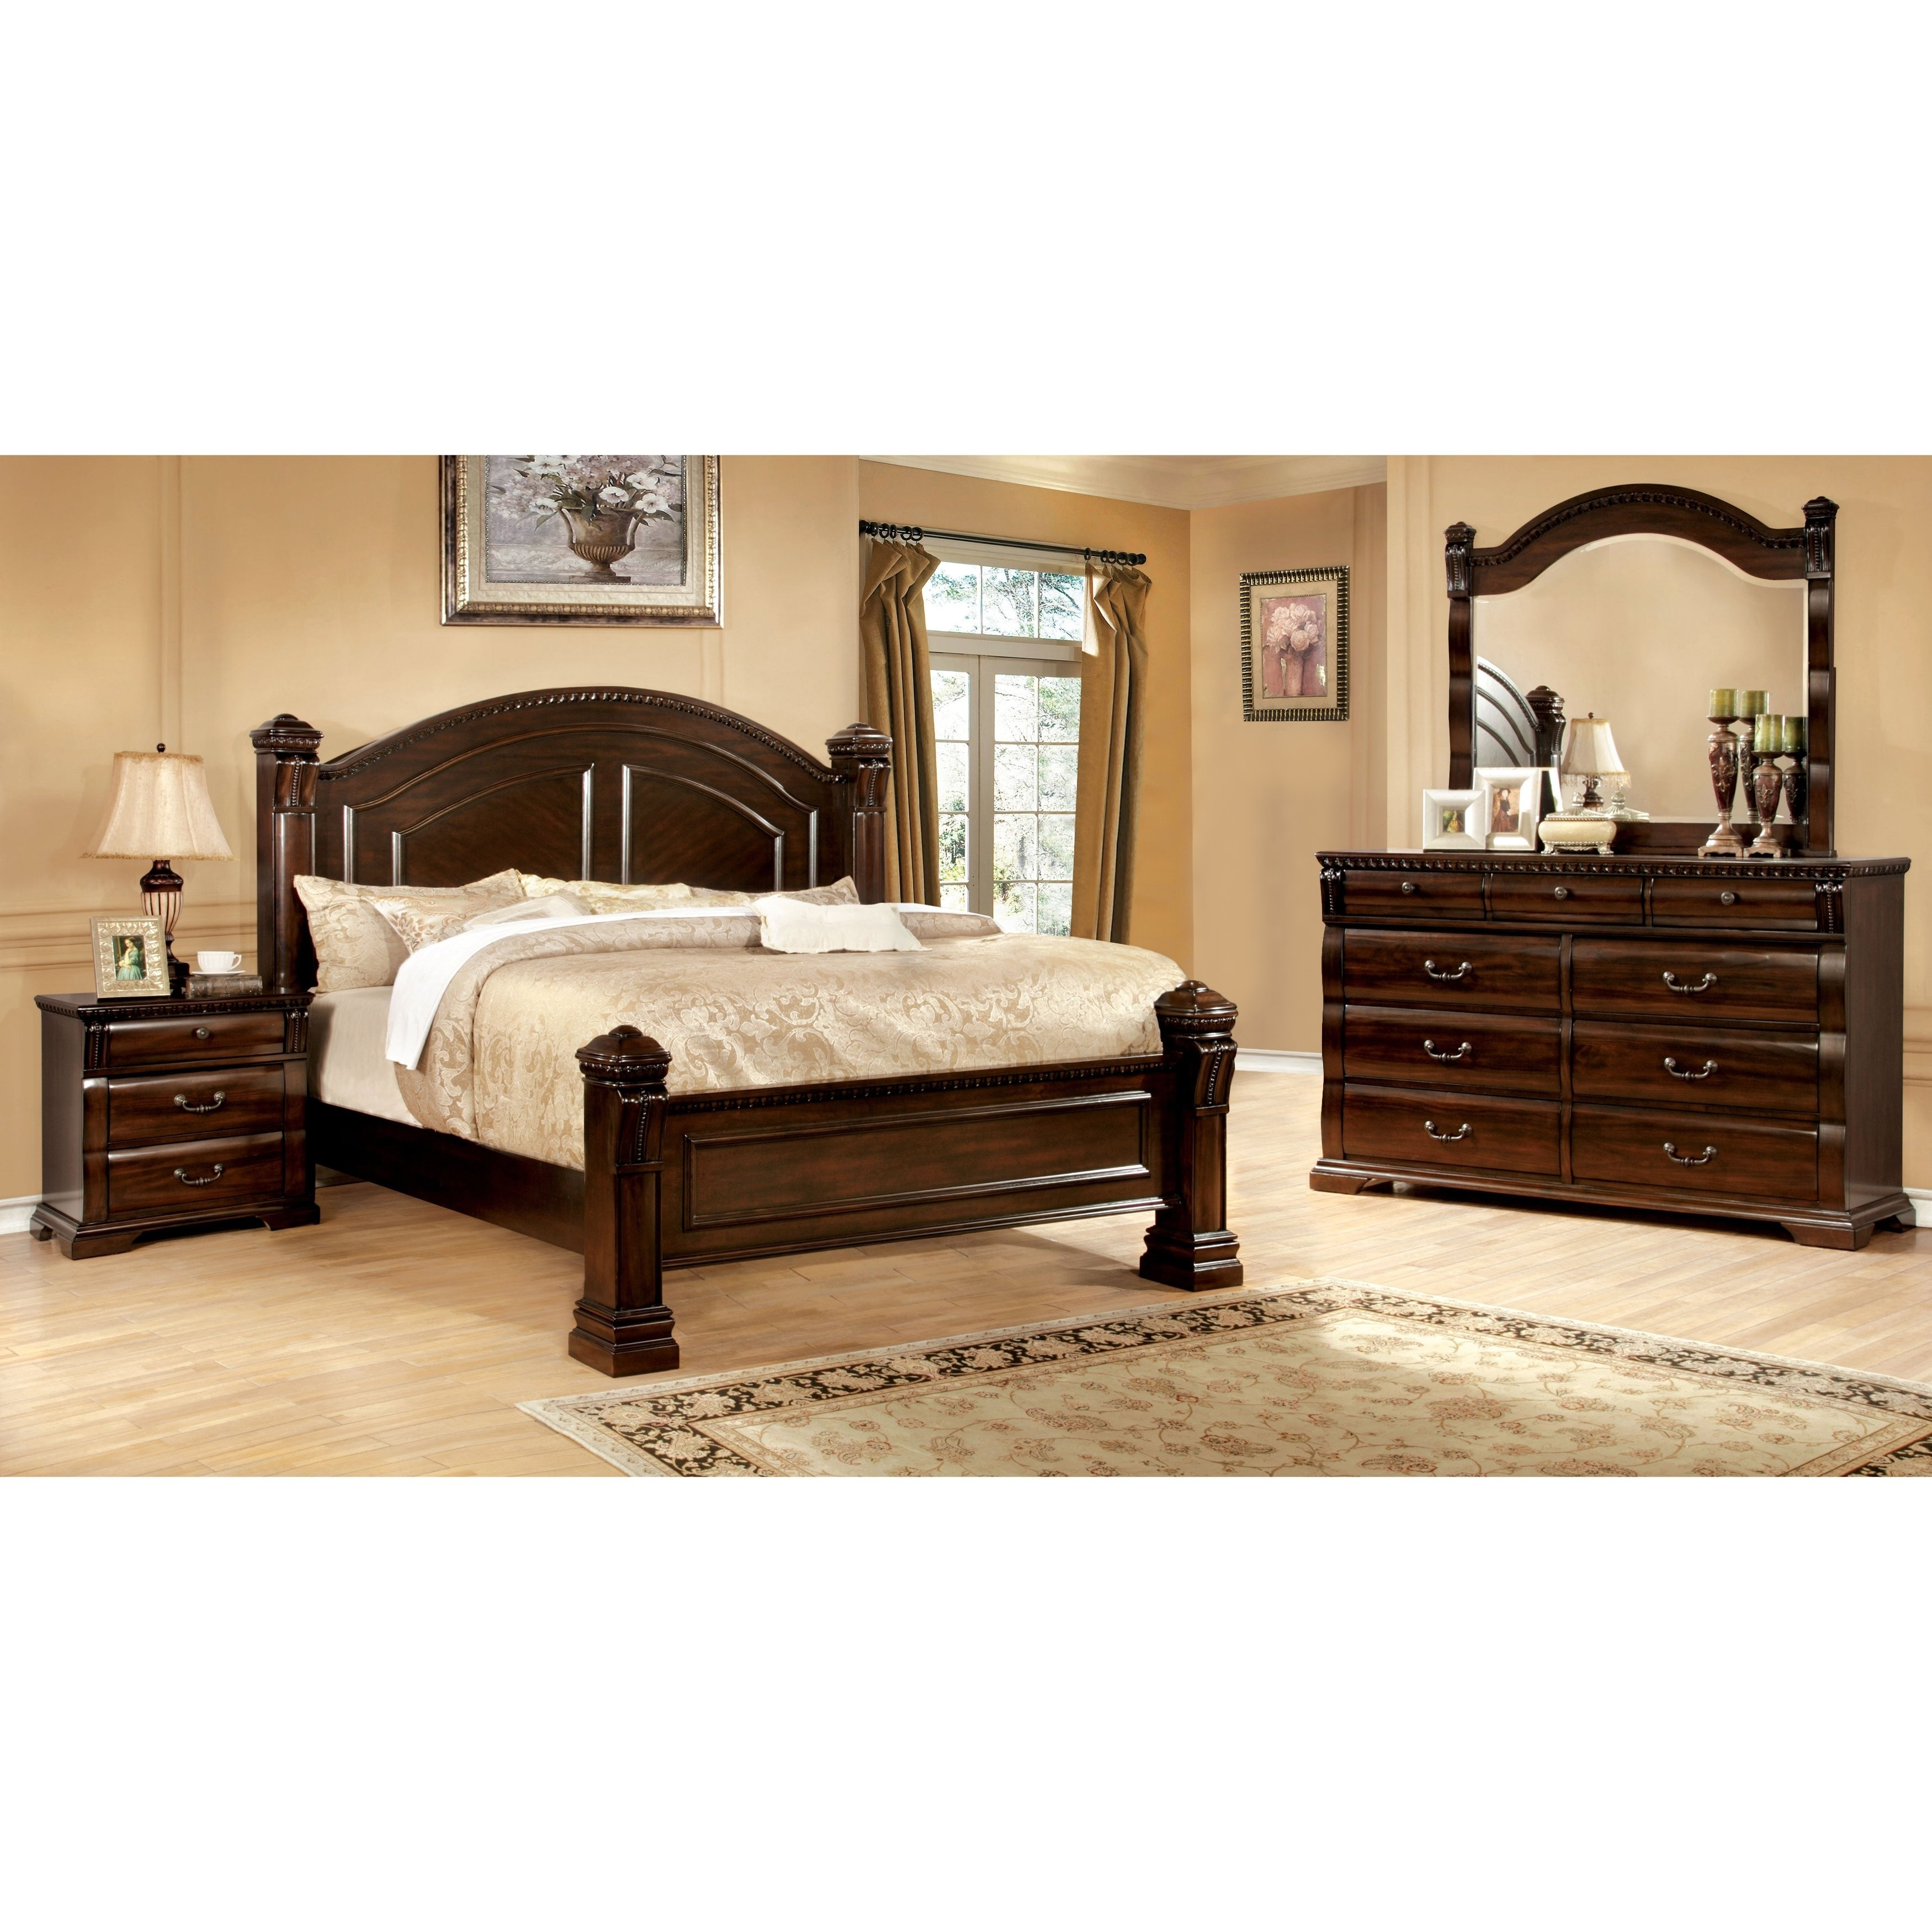 Furniture of America Tay Traditional Cherry 4-piece Bedroom Set